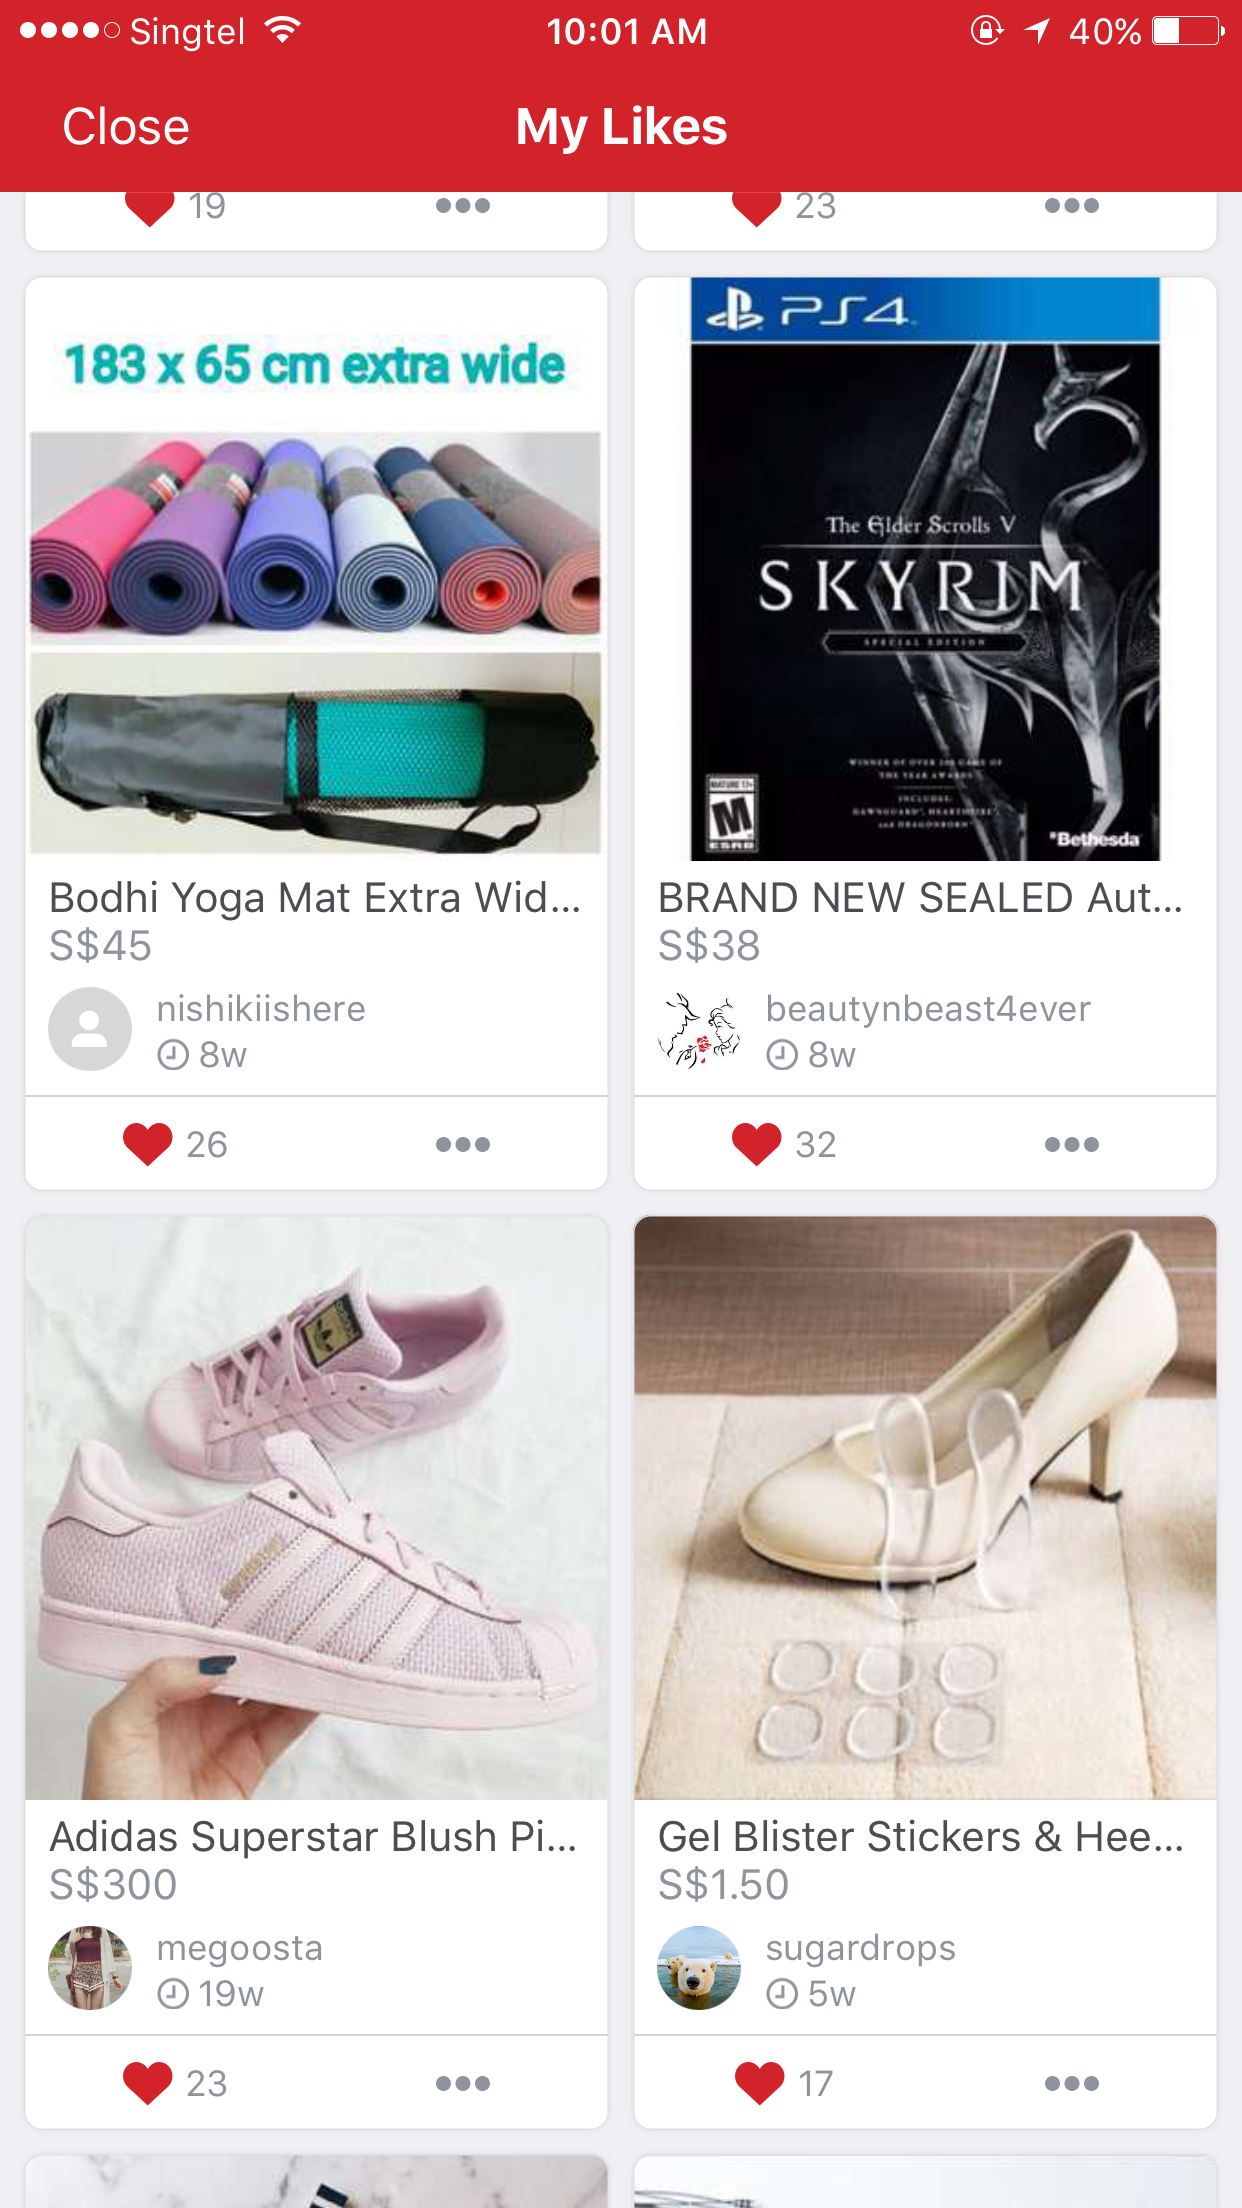 Bookmarked items on My Likes page on Carousell